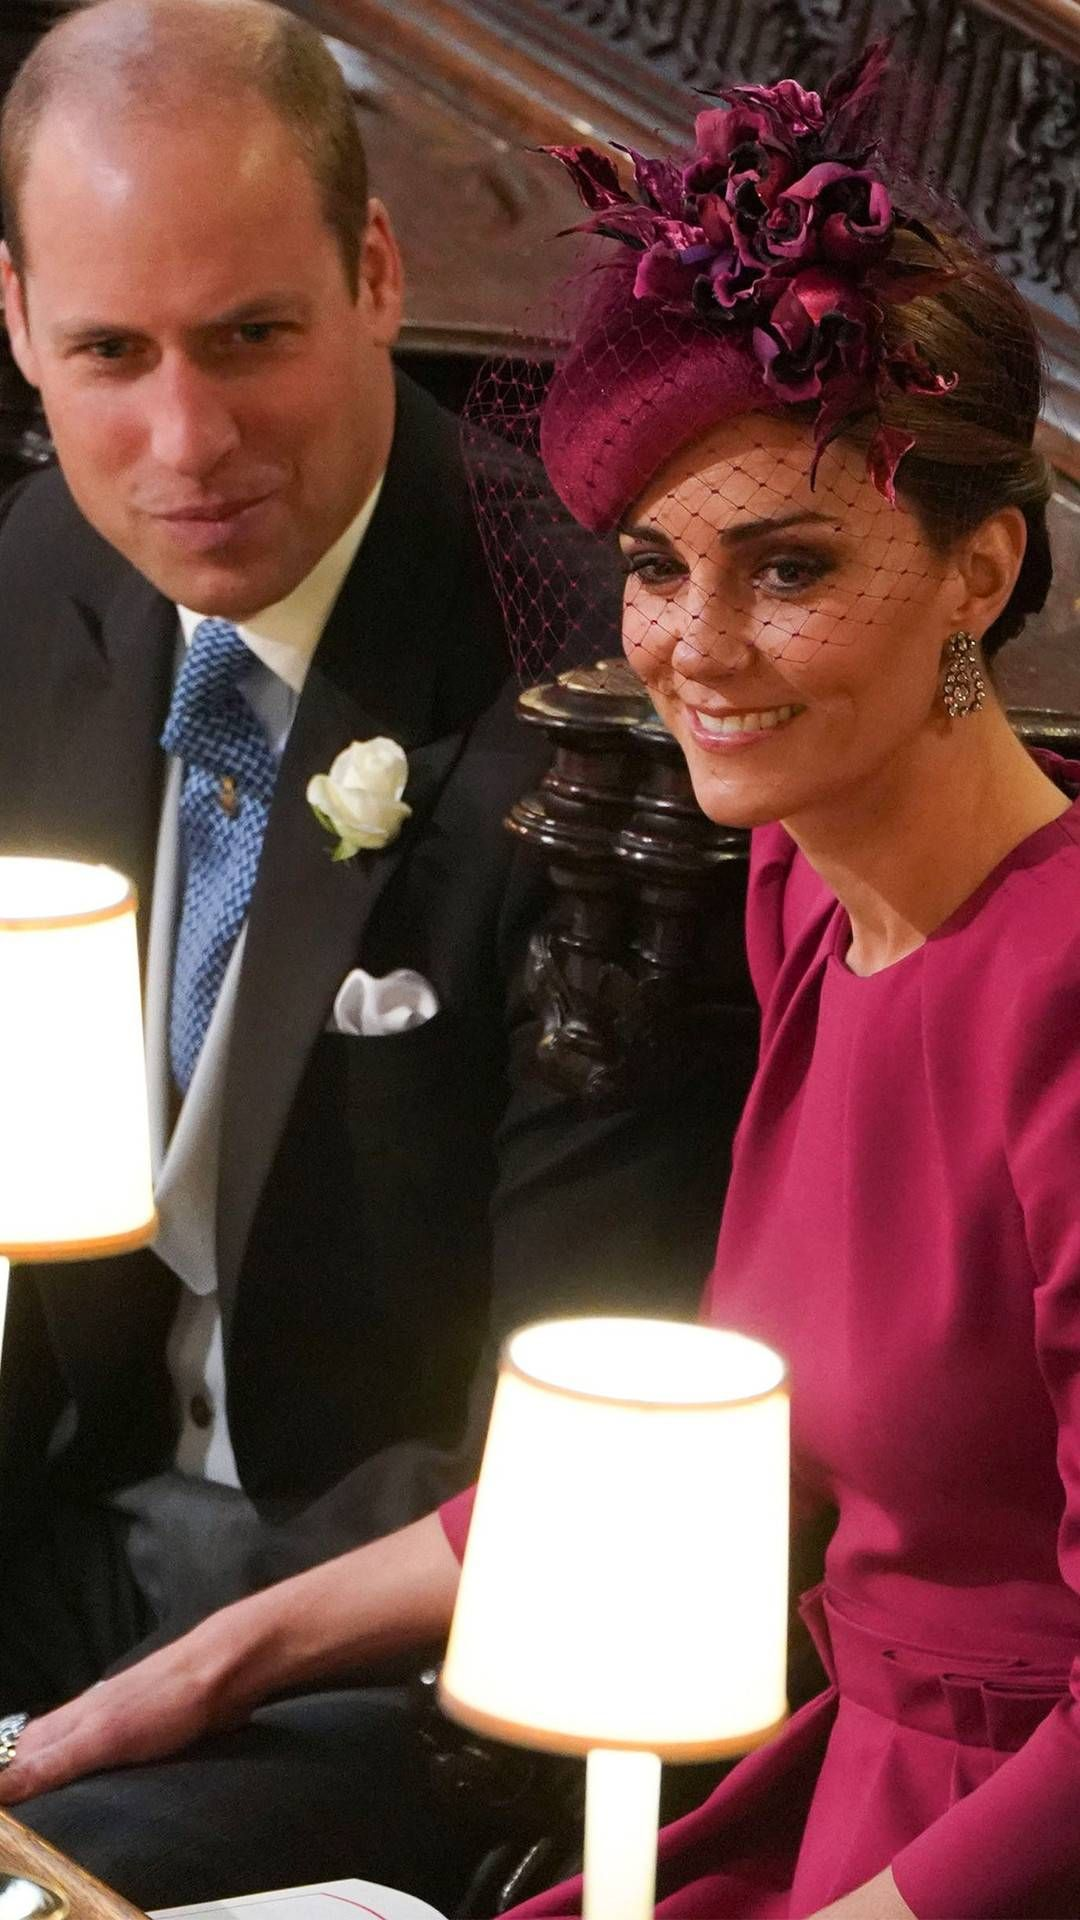 Prince William Kate Middleton From Princess Eugenie And Jack Brooksbank S Royal Weddin Kate Middleton Wedding Prince William And Kate Princess Kate Middleton